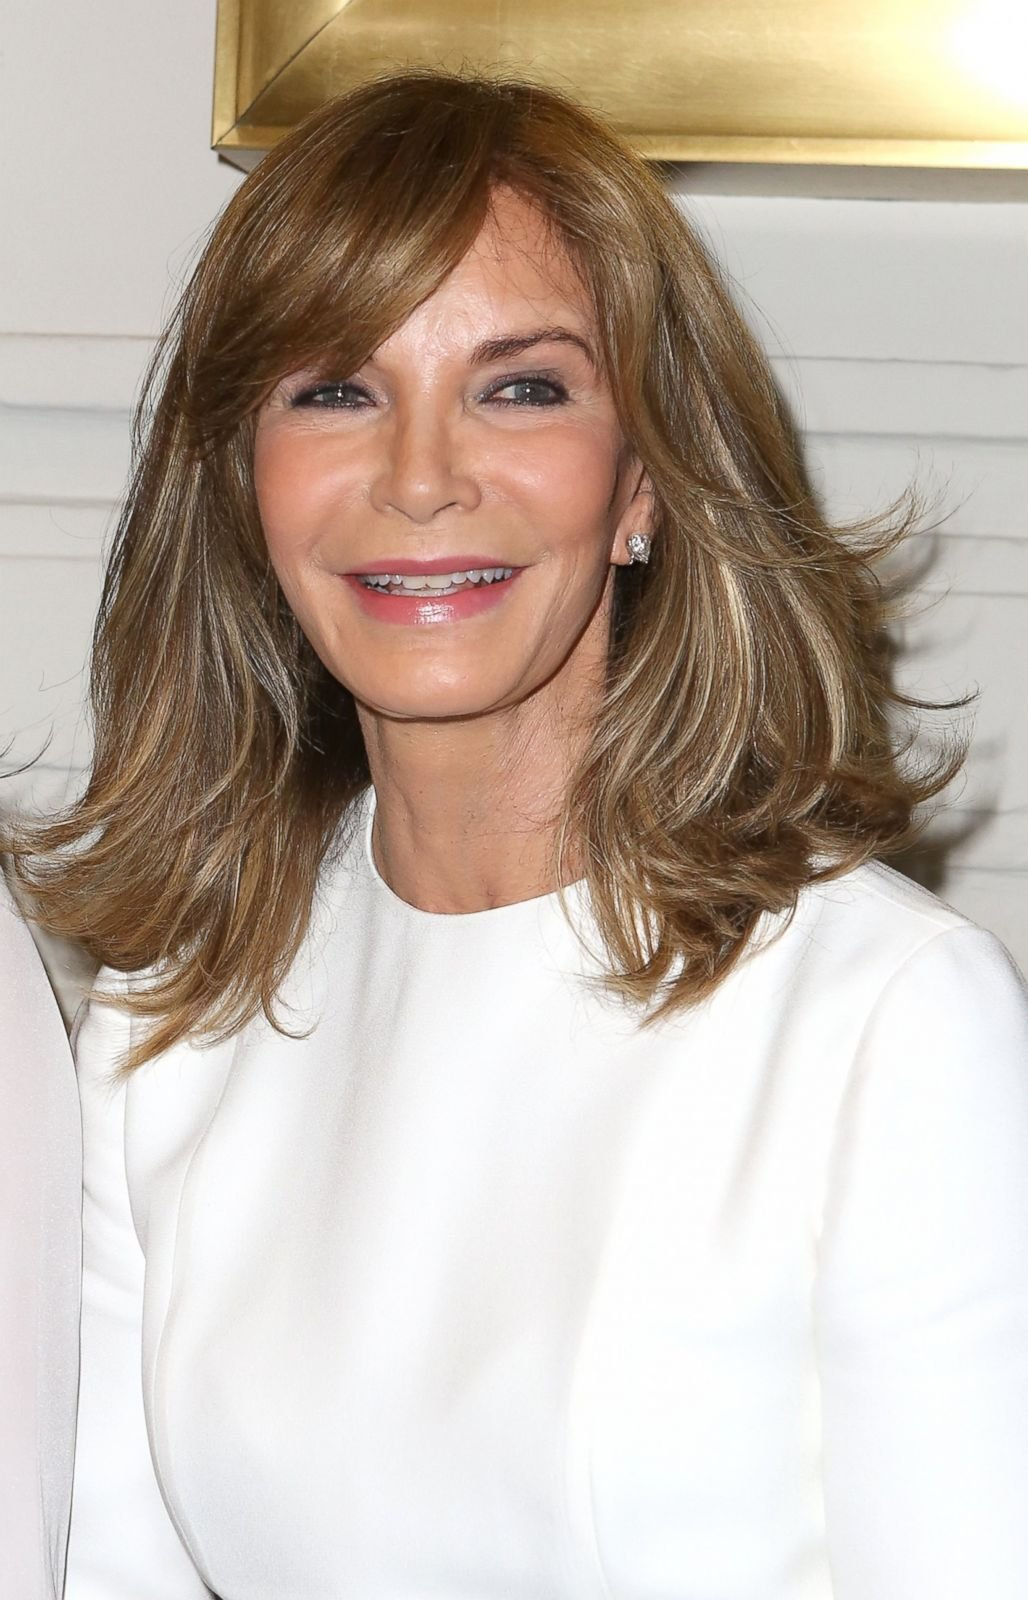 The Best Jaclyn Smith Haircut 2017 Haircuts Models Ideas Pictures